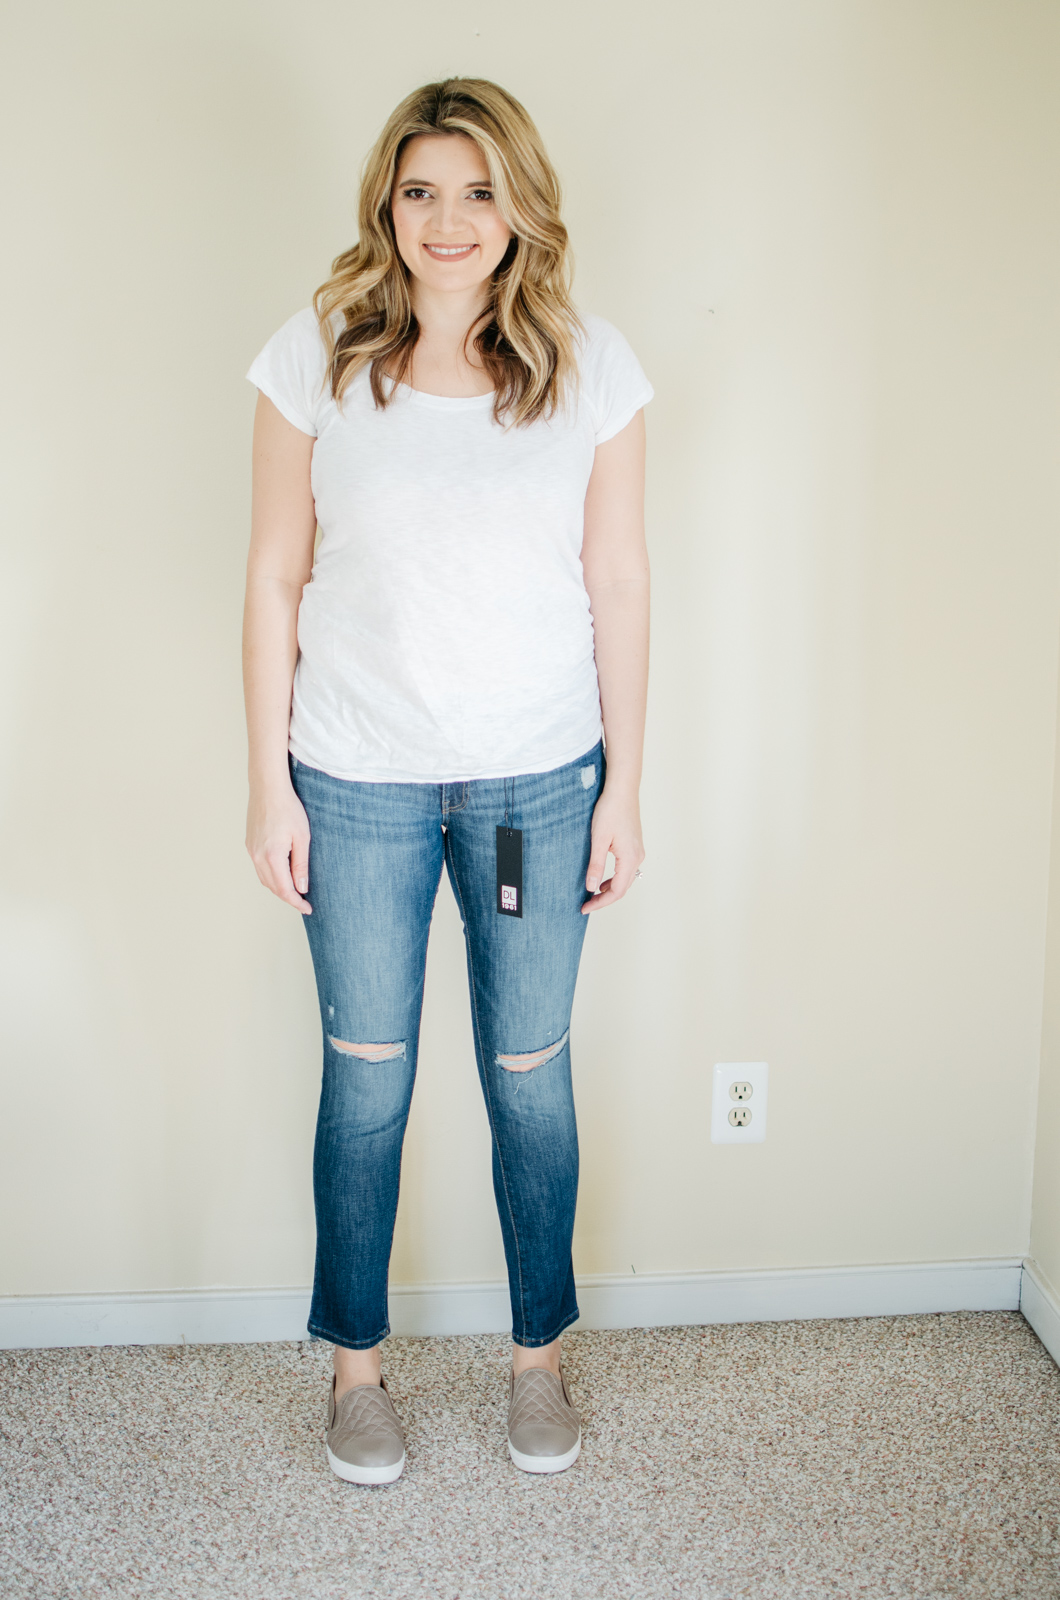 DL1961 maternity jeans - the best maternity jeans reviews | See reviews of over 15 maternity jeans brands by clicking through to this post! | bylaurenm.com